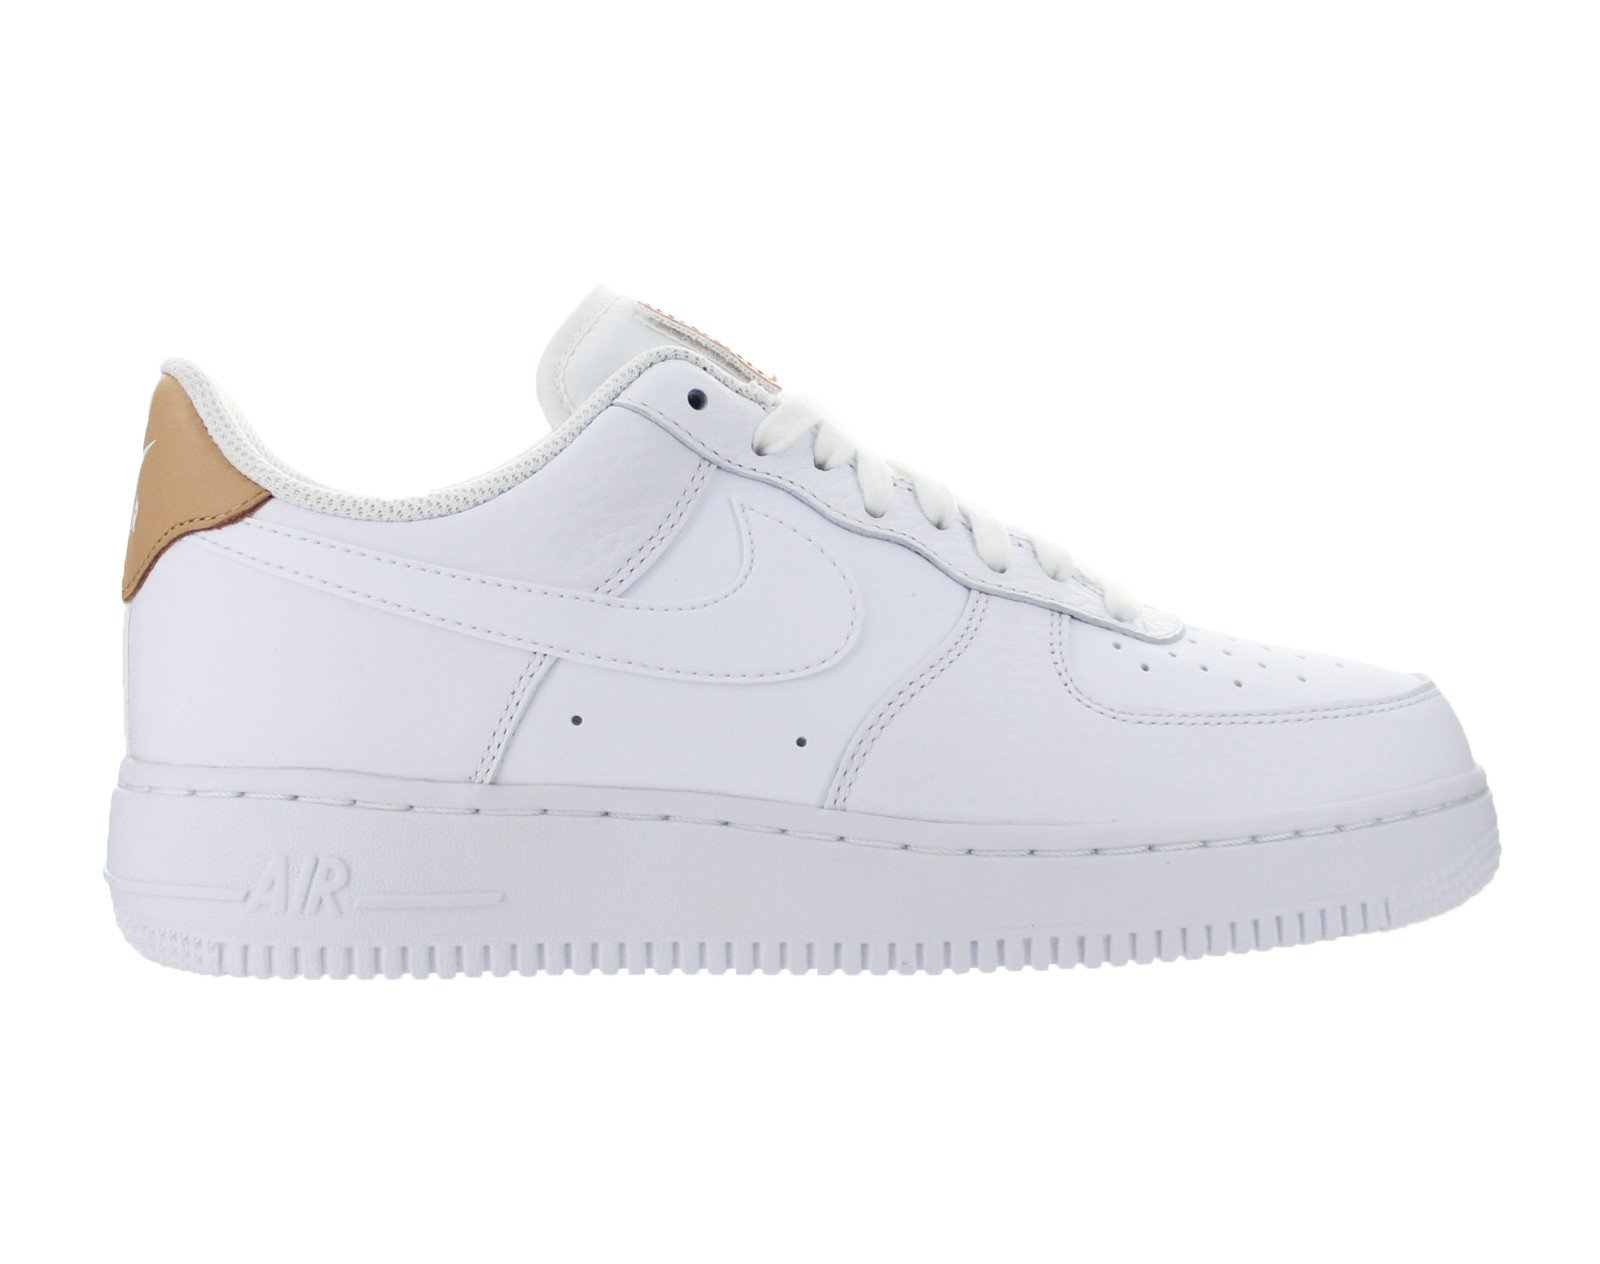 1a19deef72e Mens Nike Air Force 1  07 LV8 White Vachetta Tan Gum Light Brown 71815 -  Walmart.com